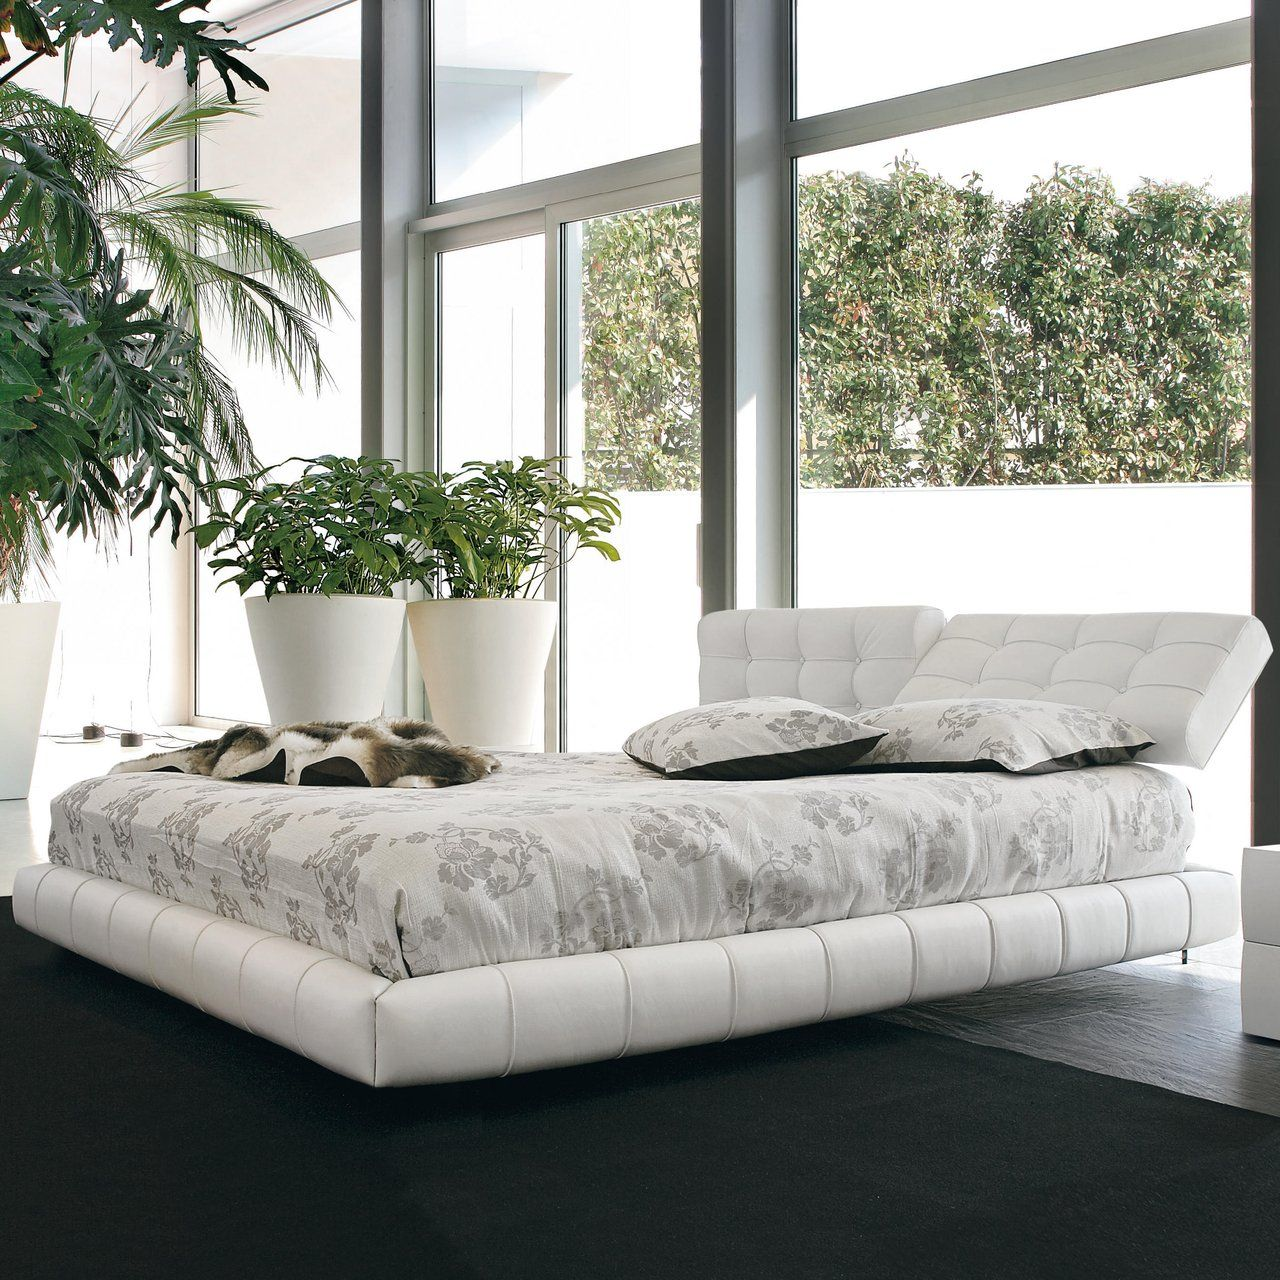 Cloud Bed Capitonne Fancy Bed Tufted Bed Bed